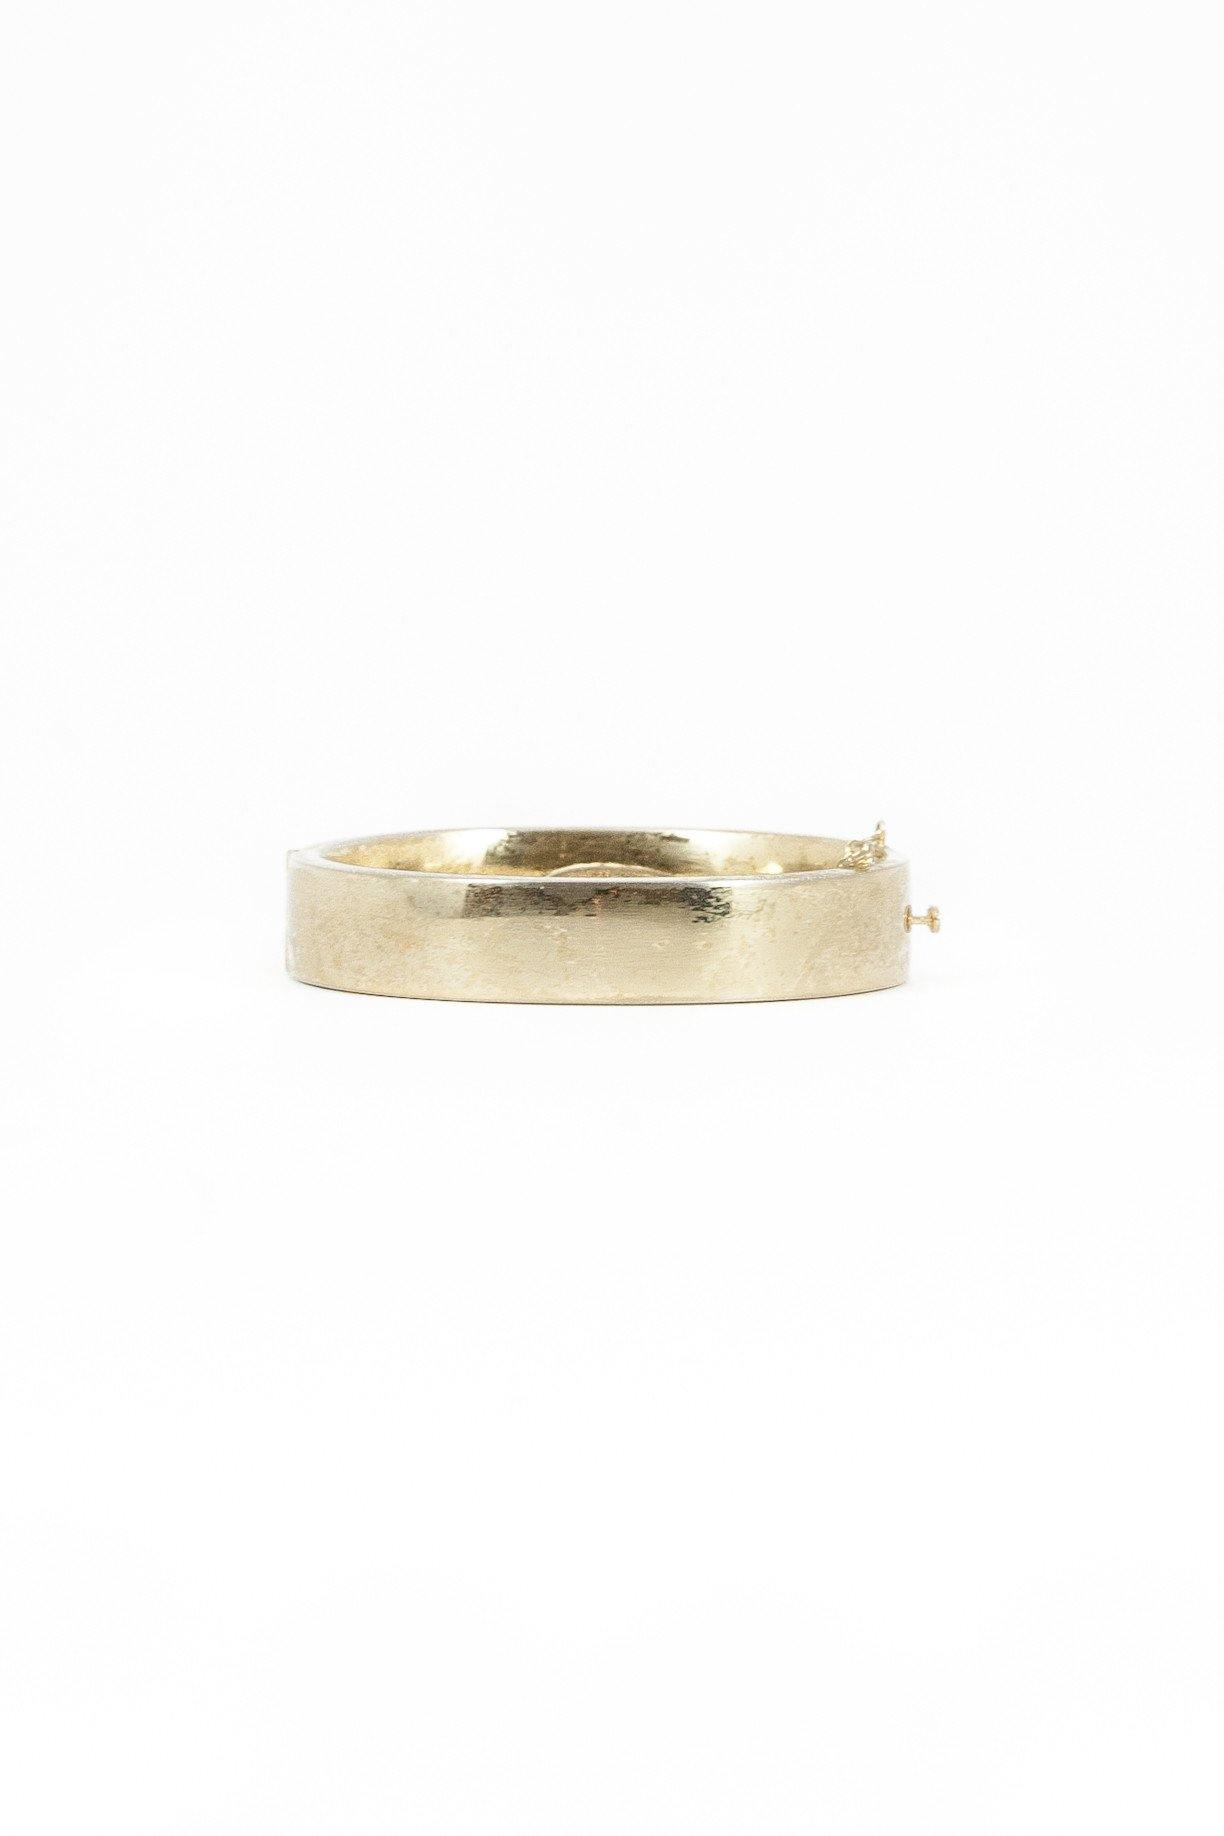 40's__Whiting Davis__Clean Classic Bangle